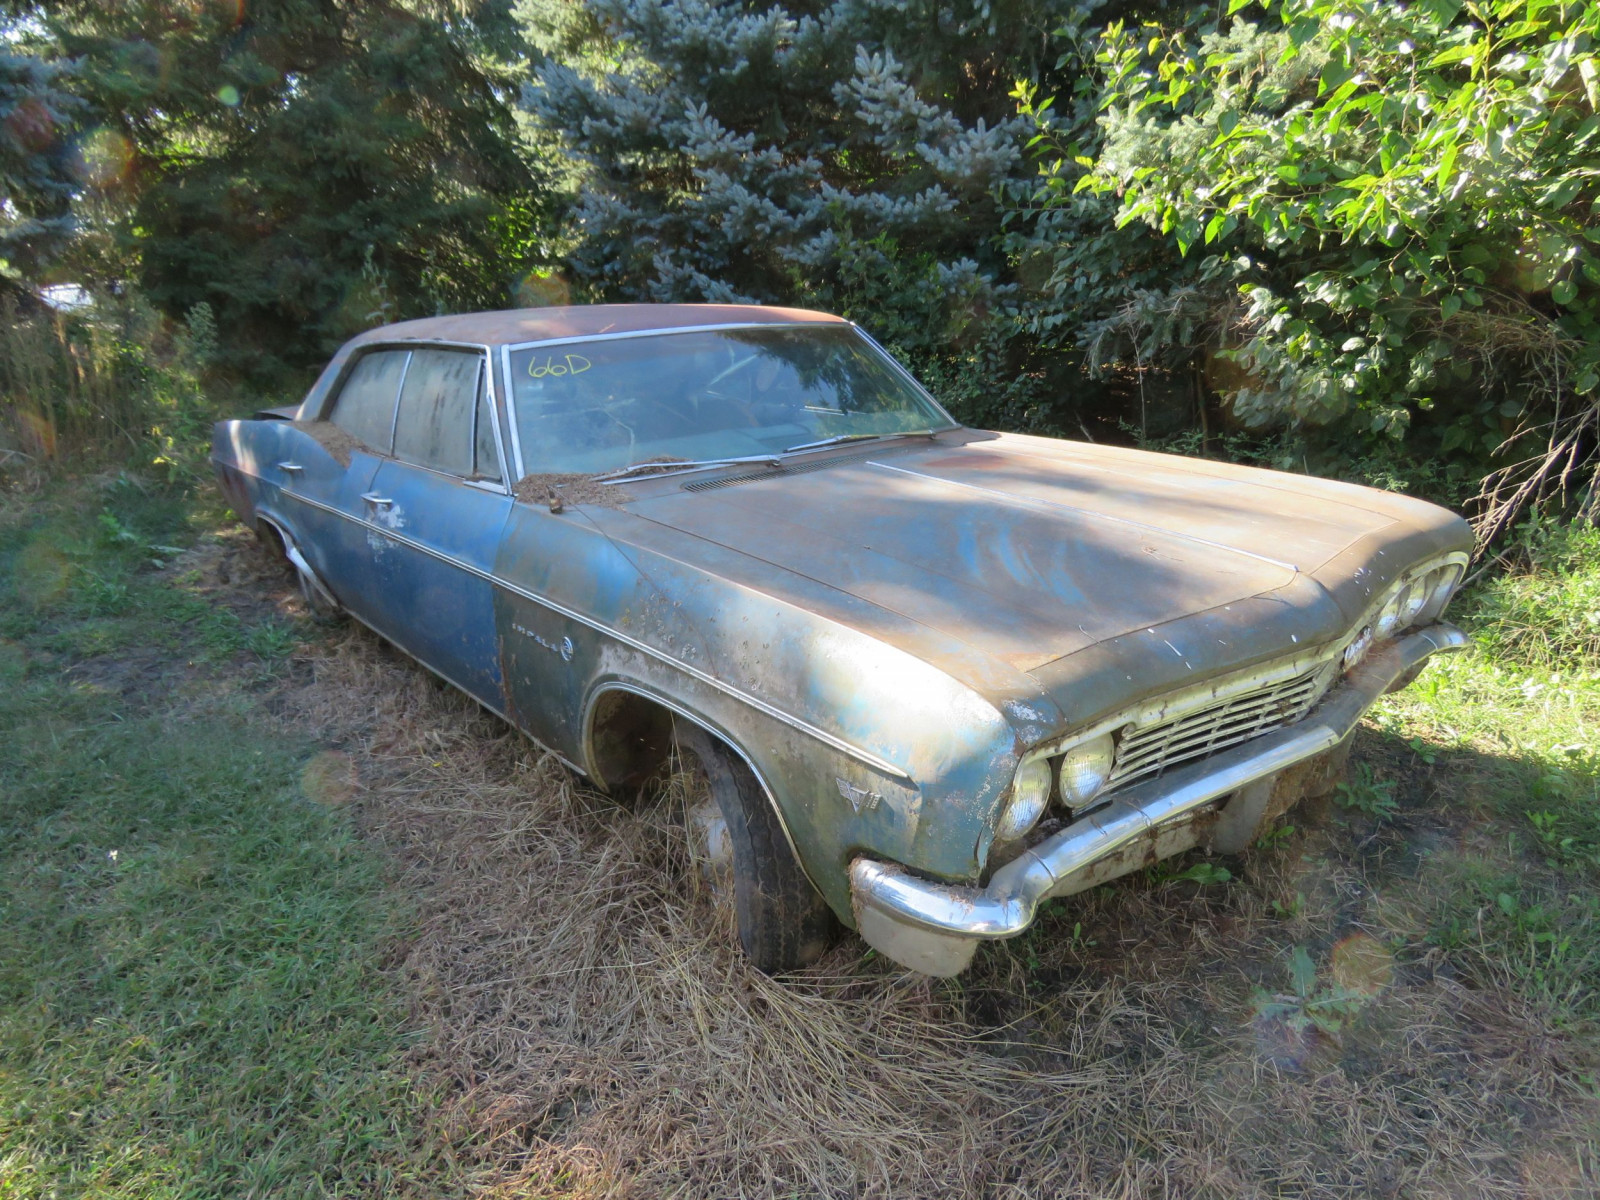 1966 Chevrolet Impala 4dr HT for Project or Parts - Image 1